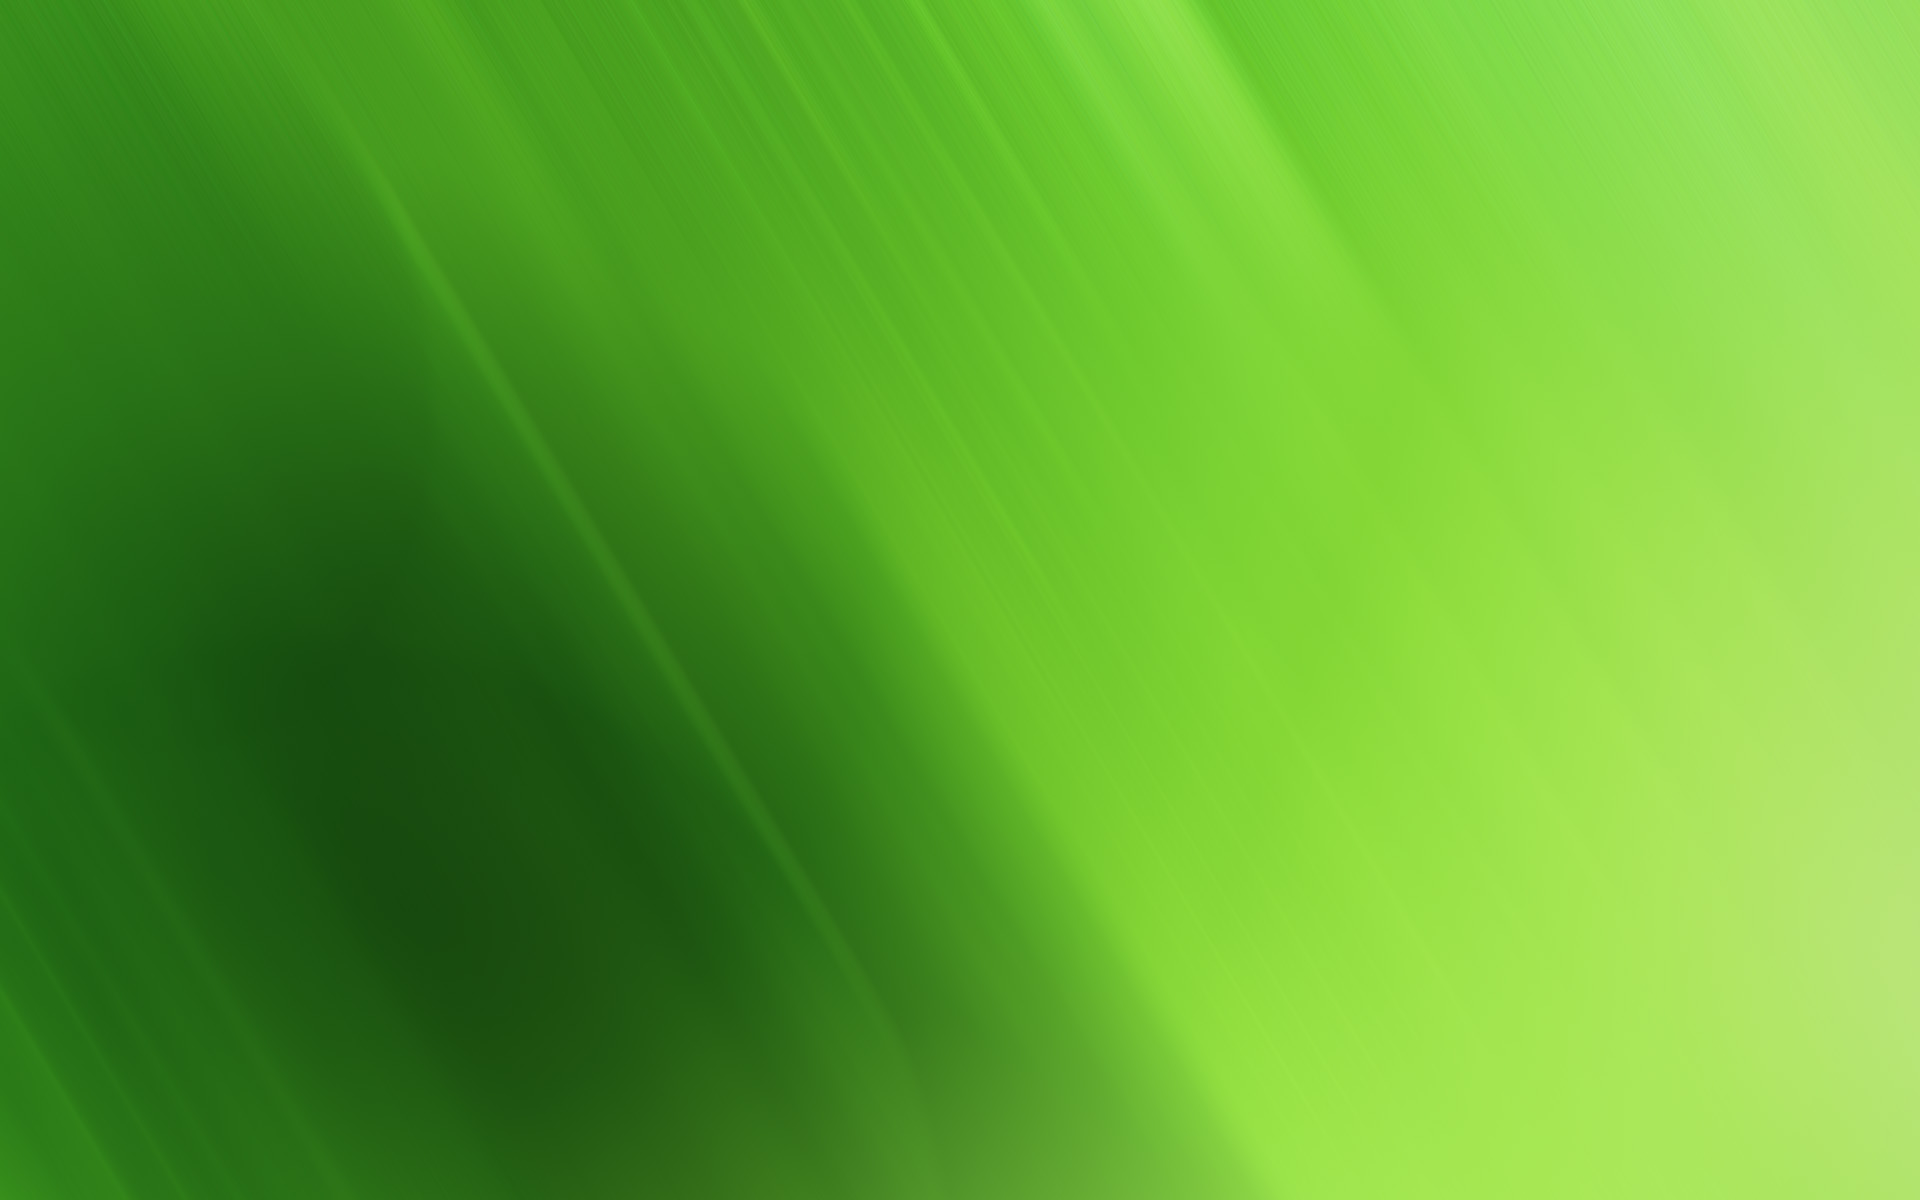 wallpapers abstract green desktop background 1920x1200 1920x1200